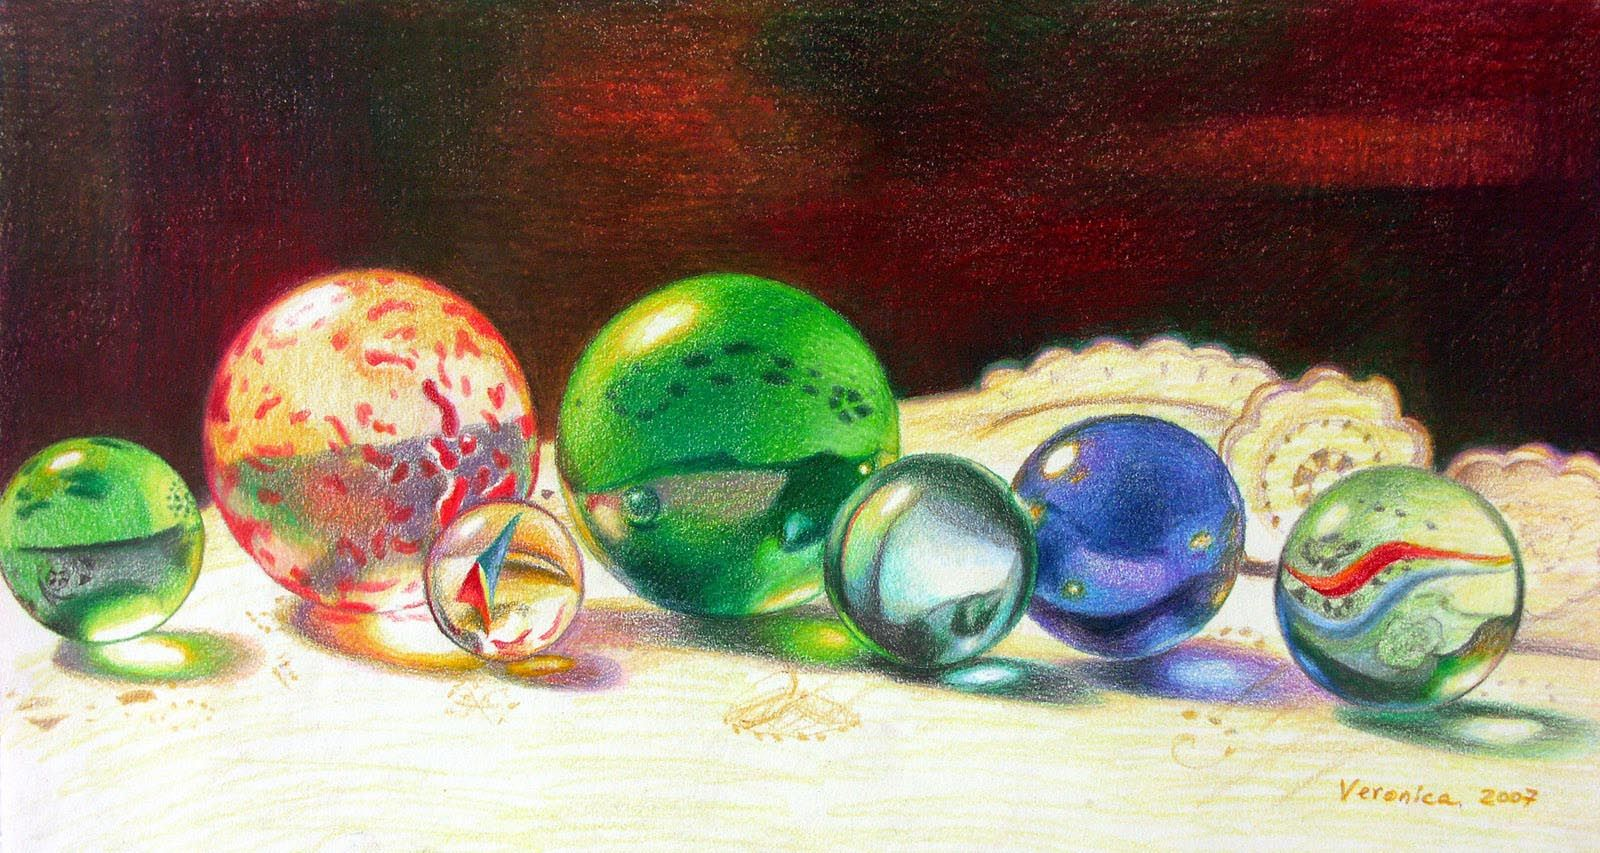 Colored Pencil Drawings Of Marbles : Still life drawing colored pencil pixshark